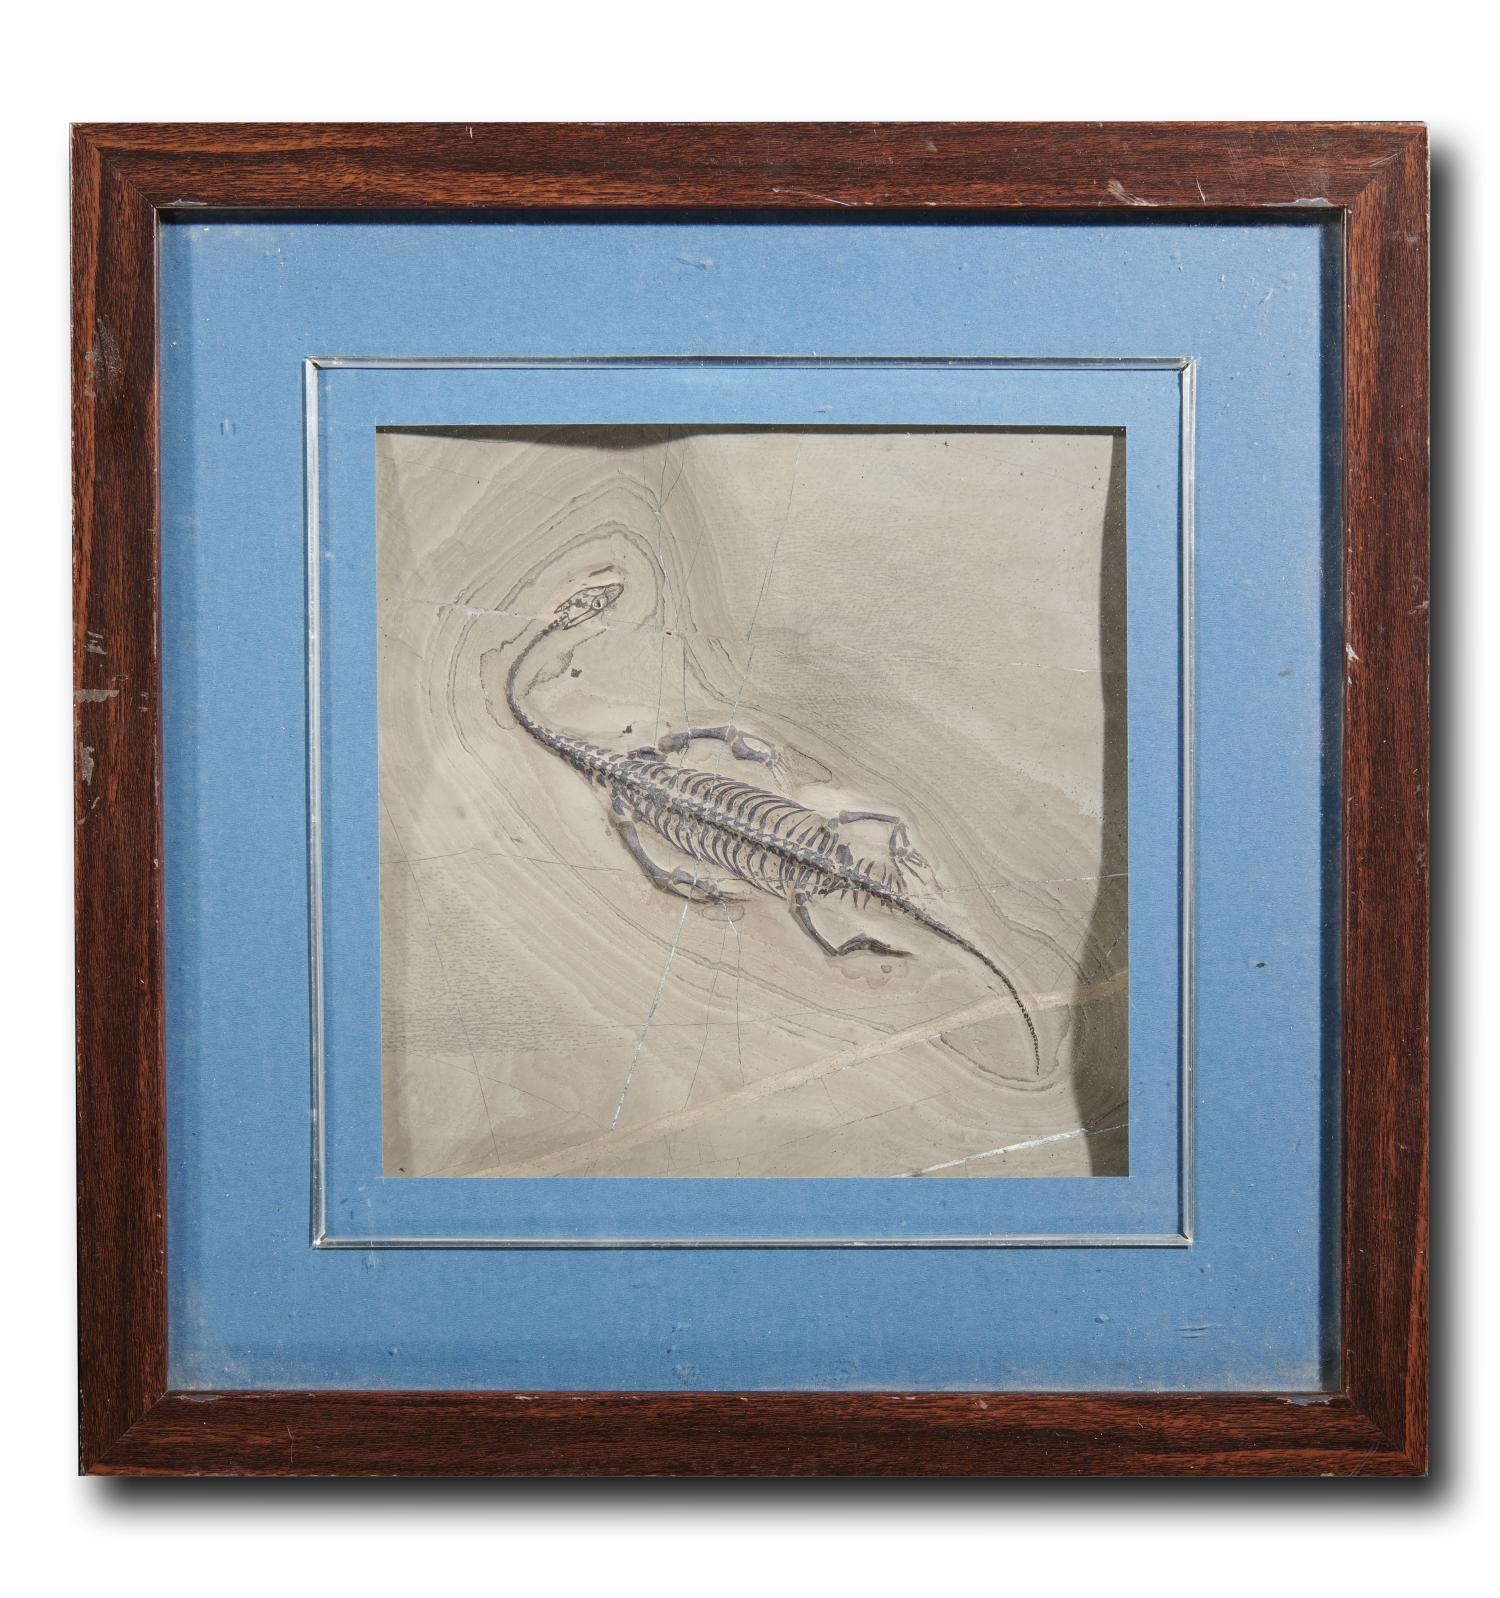 Lot 144: A framed Keichosaur fossil